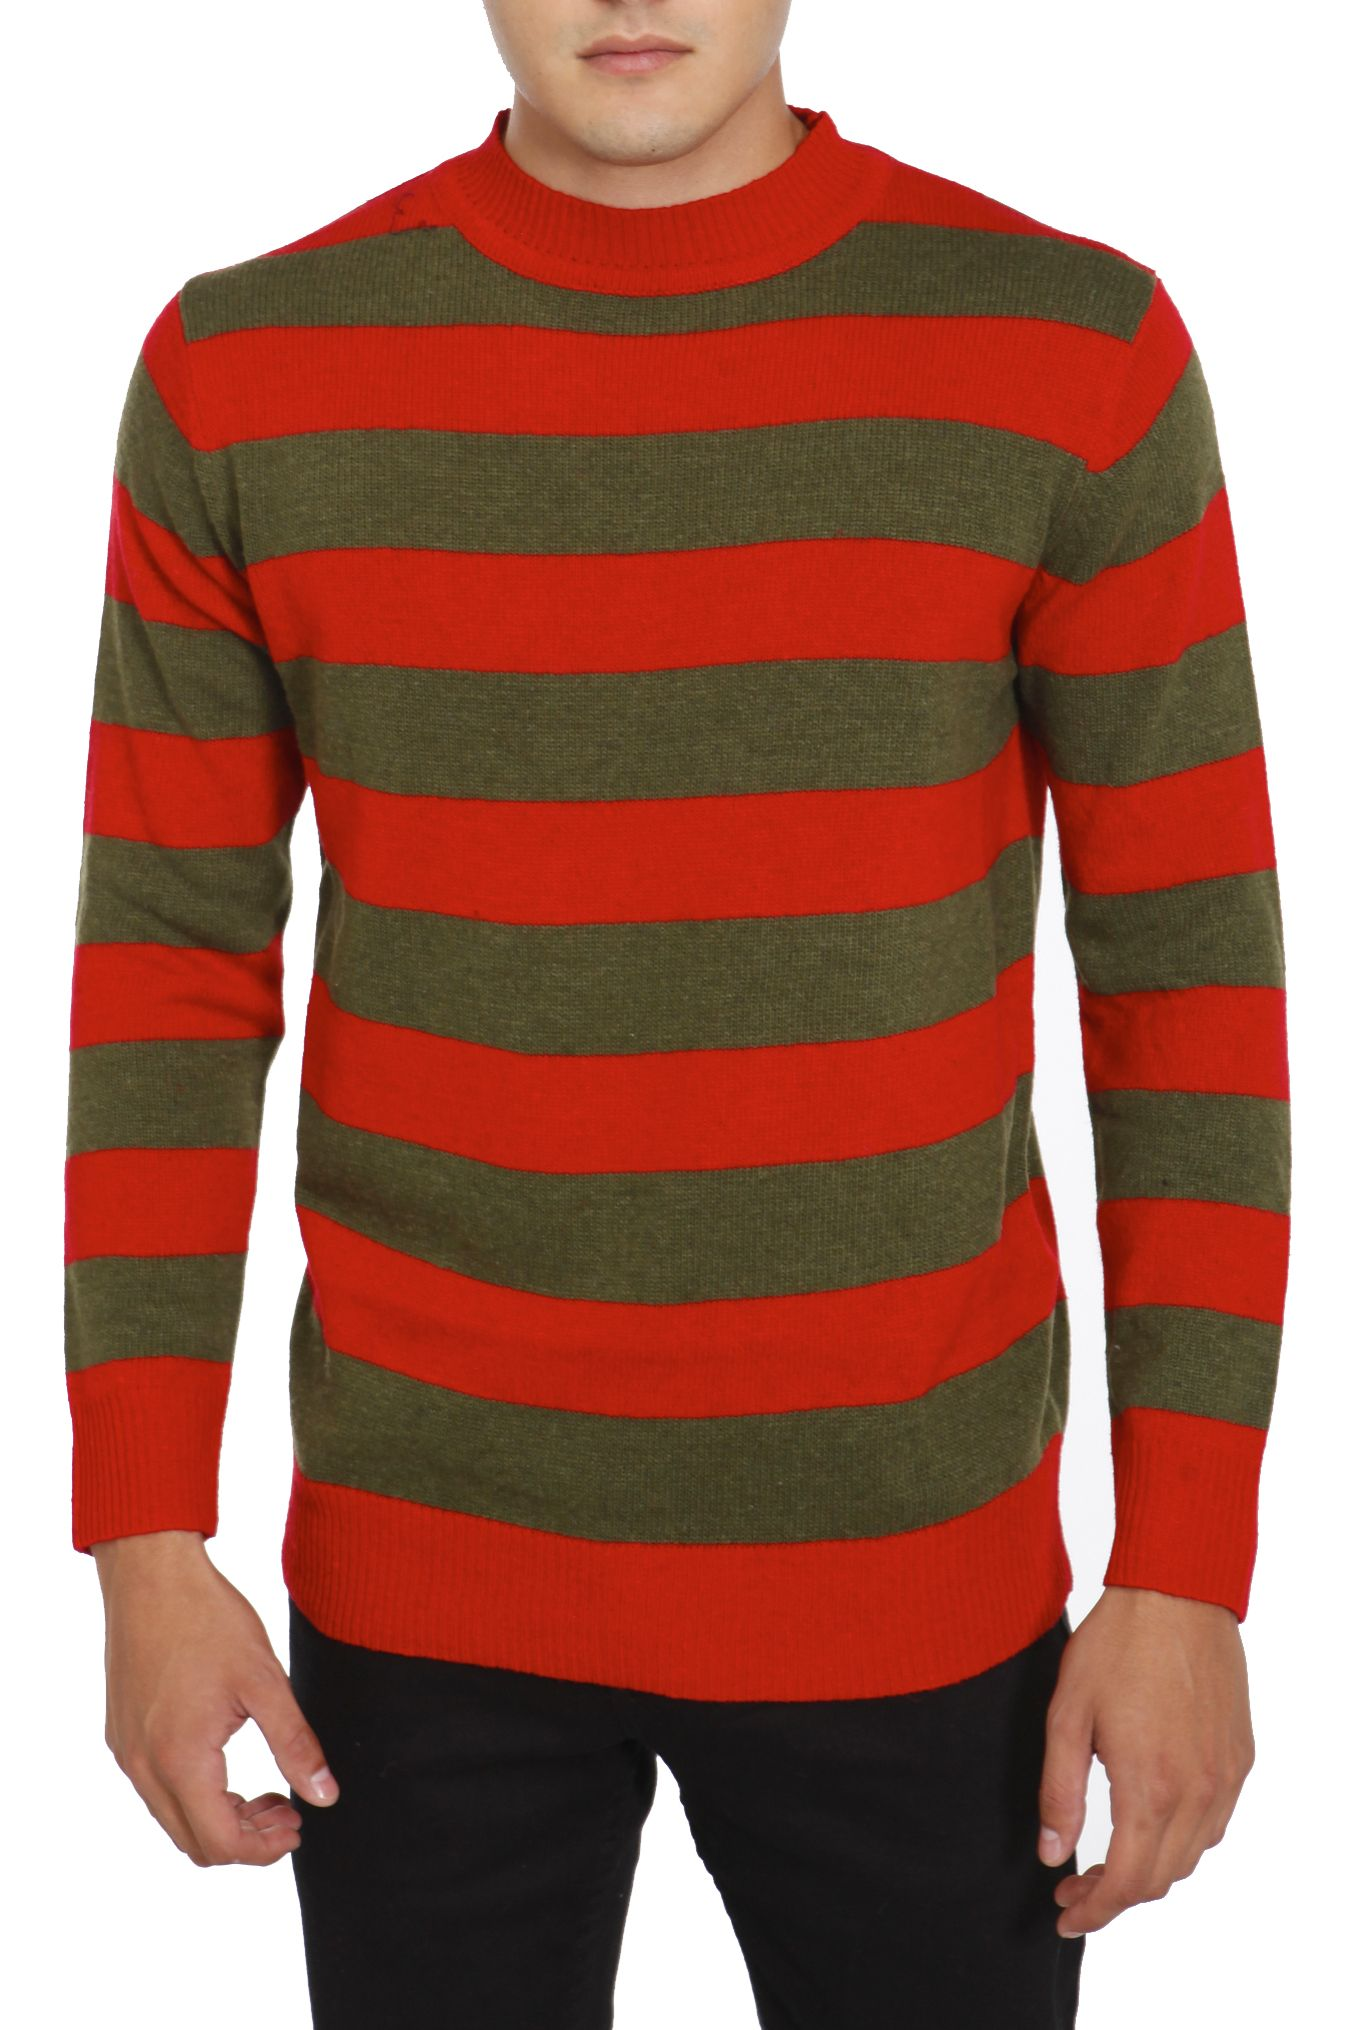 You'll look killer in this red and olive green striped sweater ...